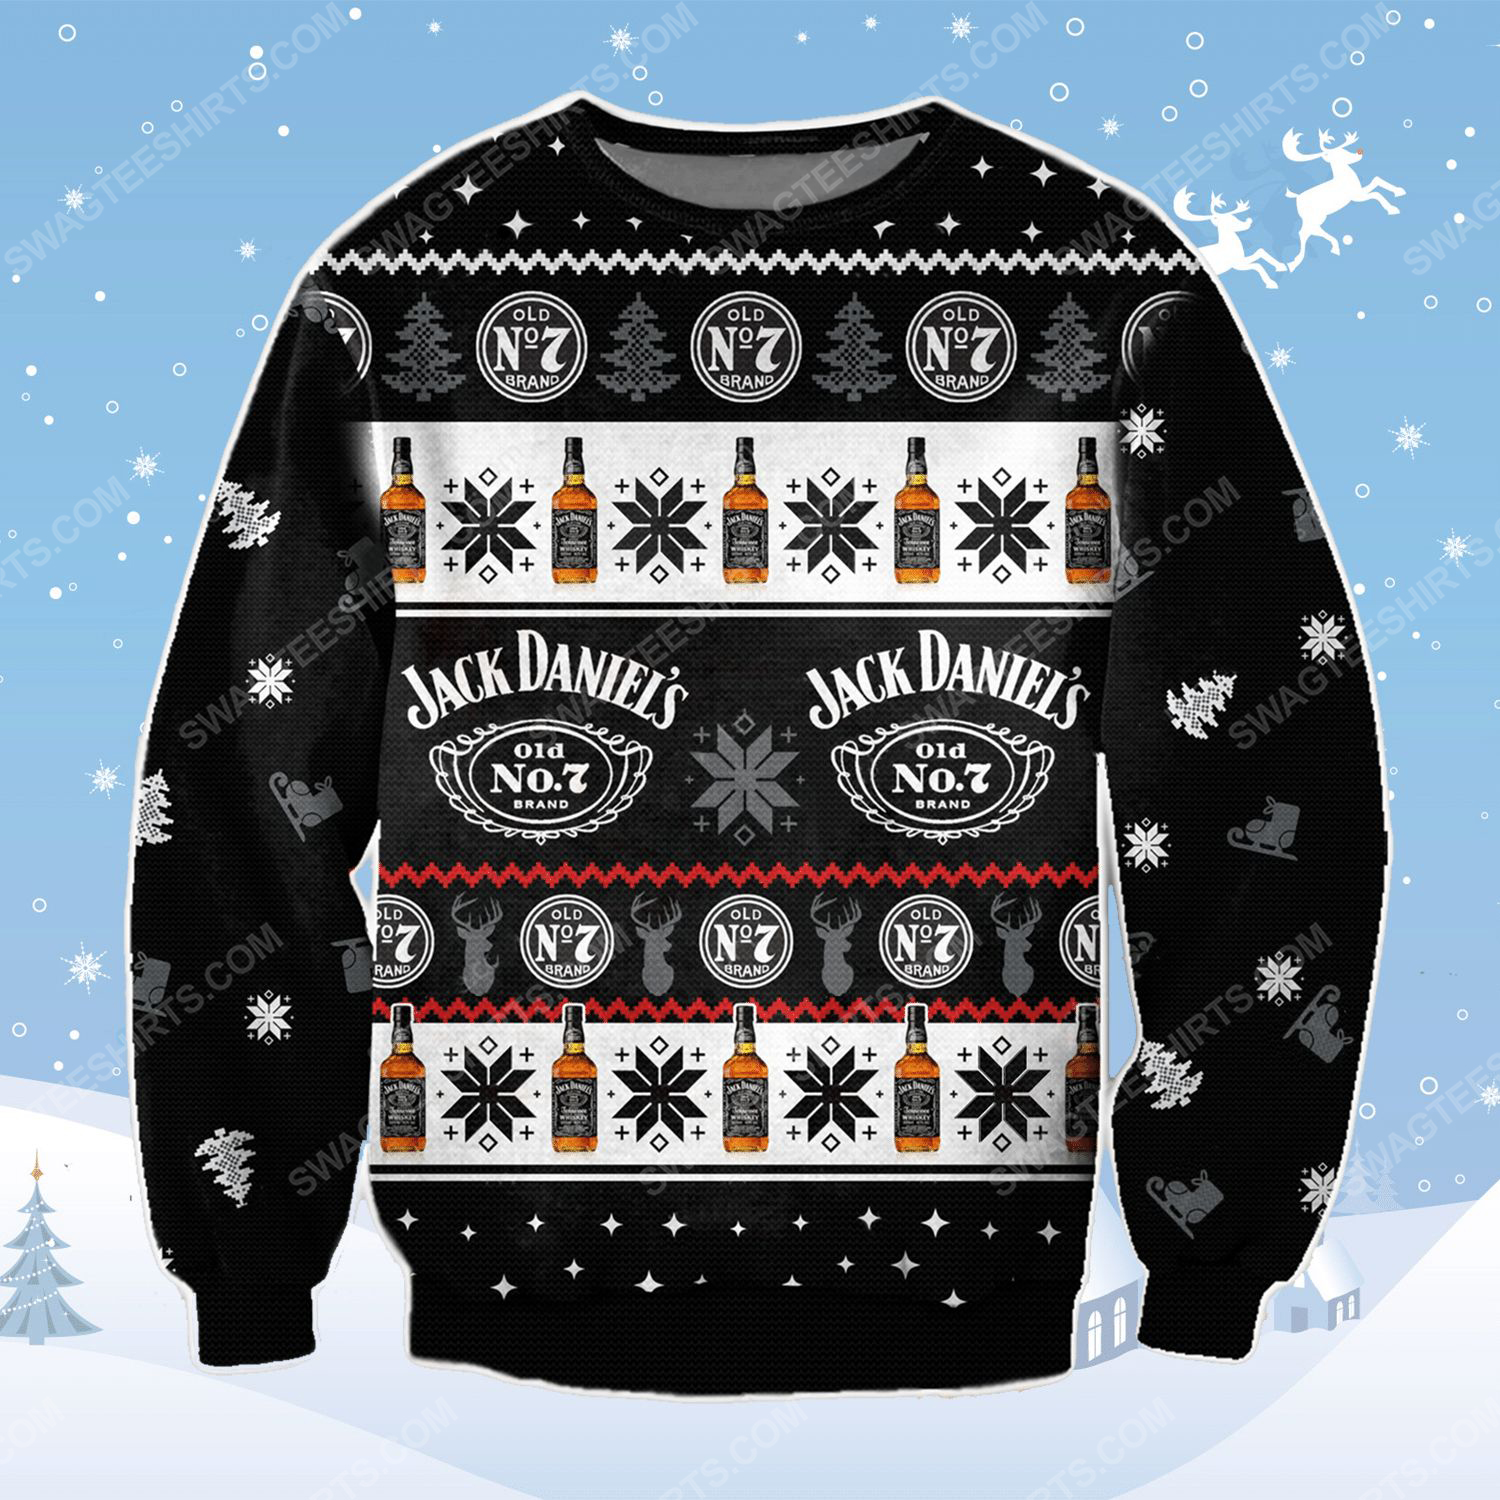 Jack daniel's old no 7 tennessee whiskey ugly christmas sweater